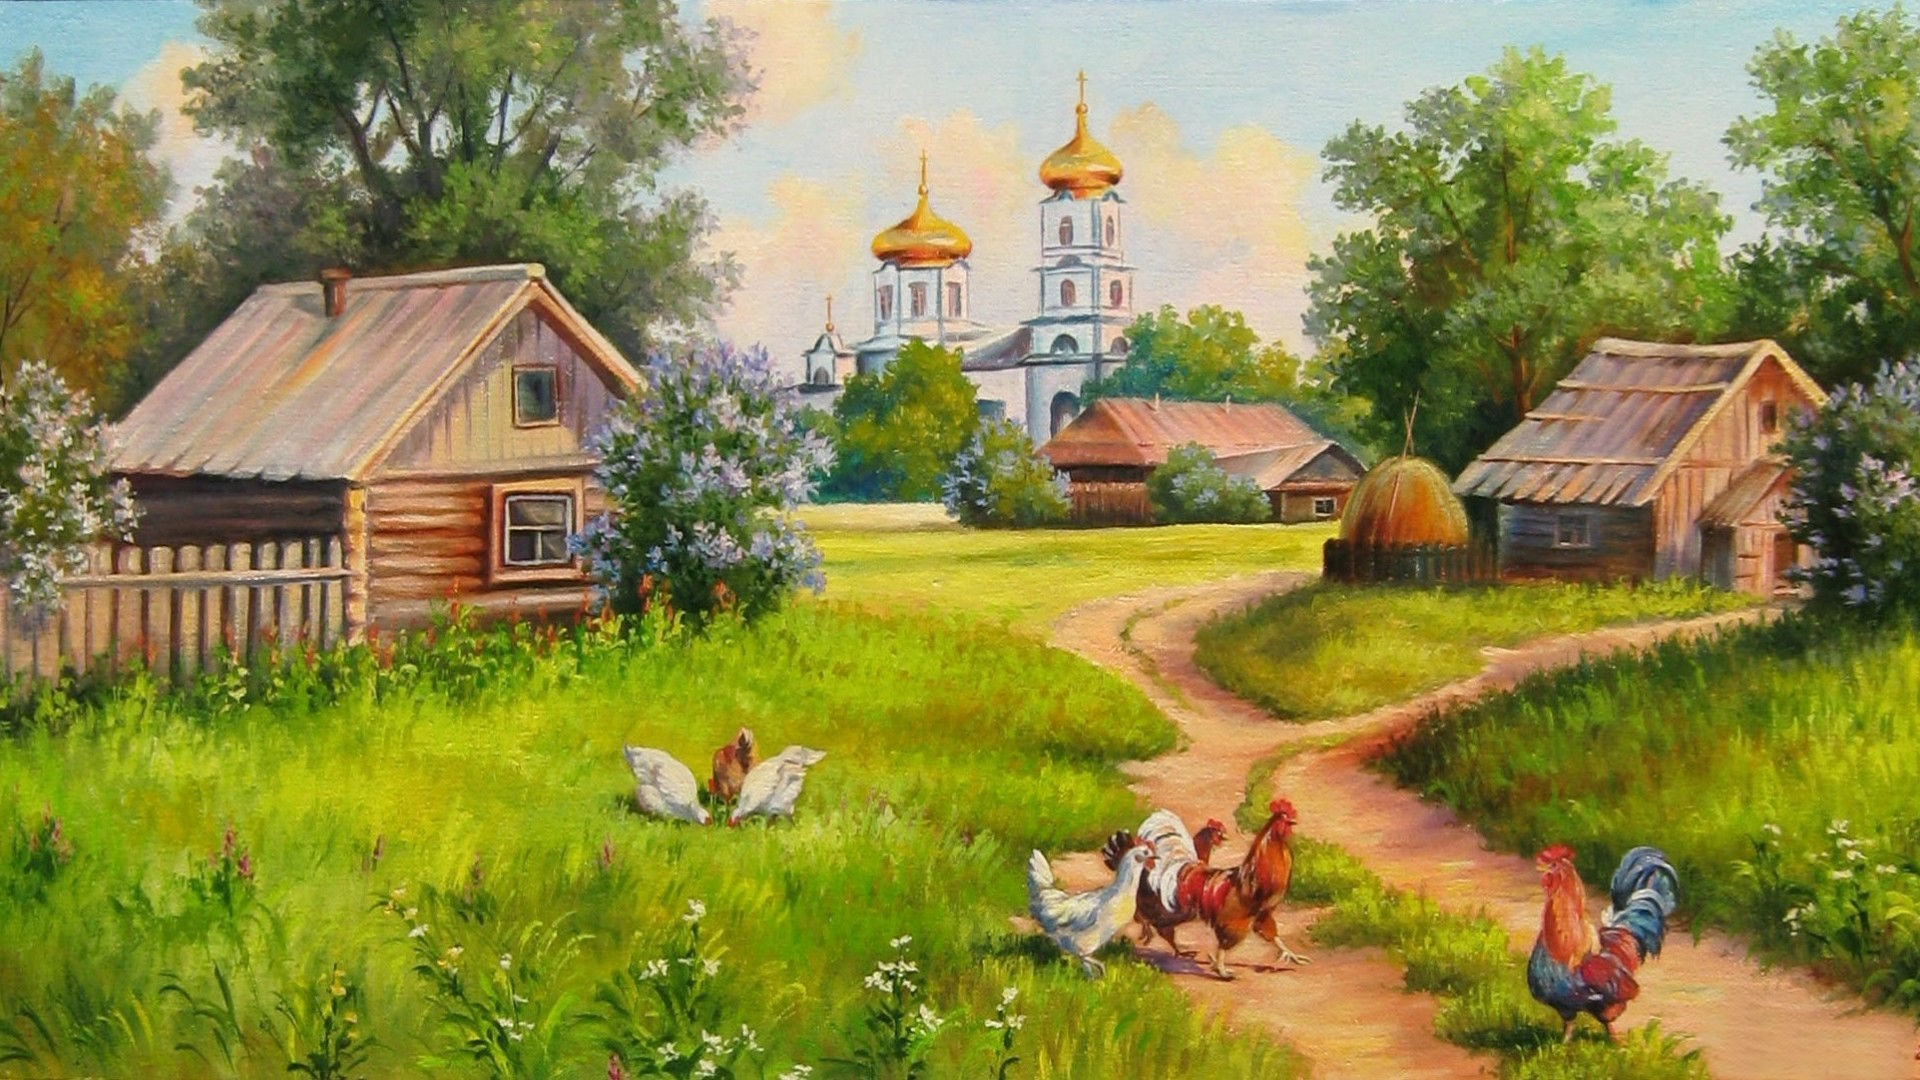 Village painting hd wallpaper 1001339 - Art village wallpaper ...